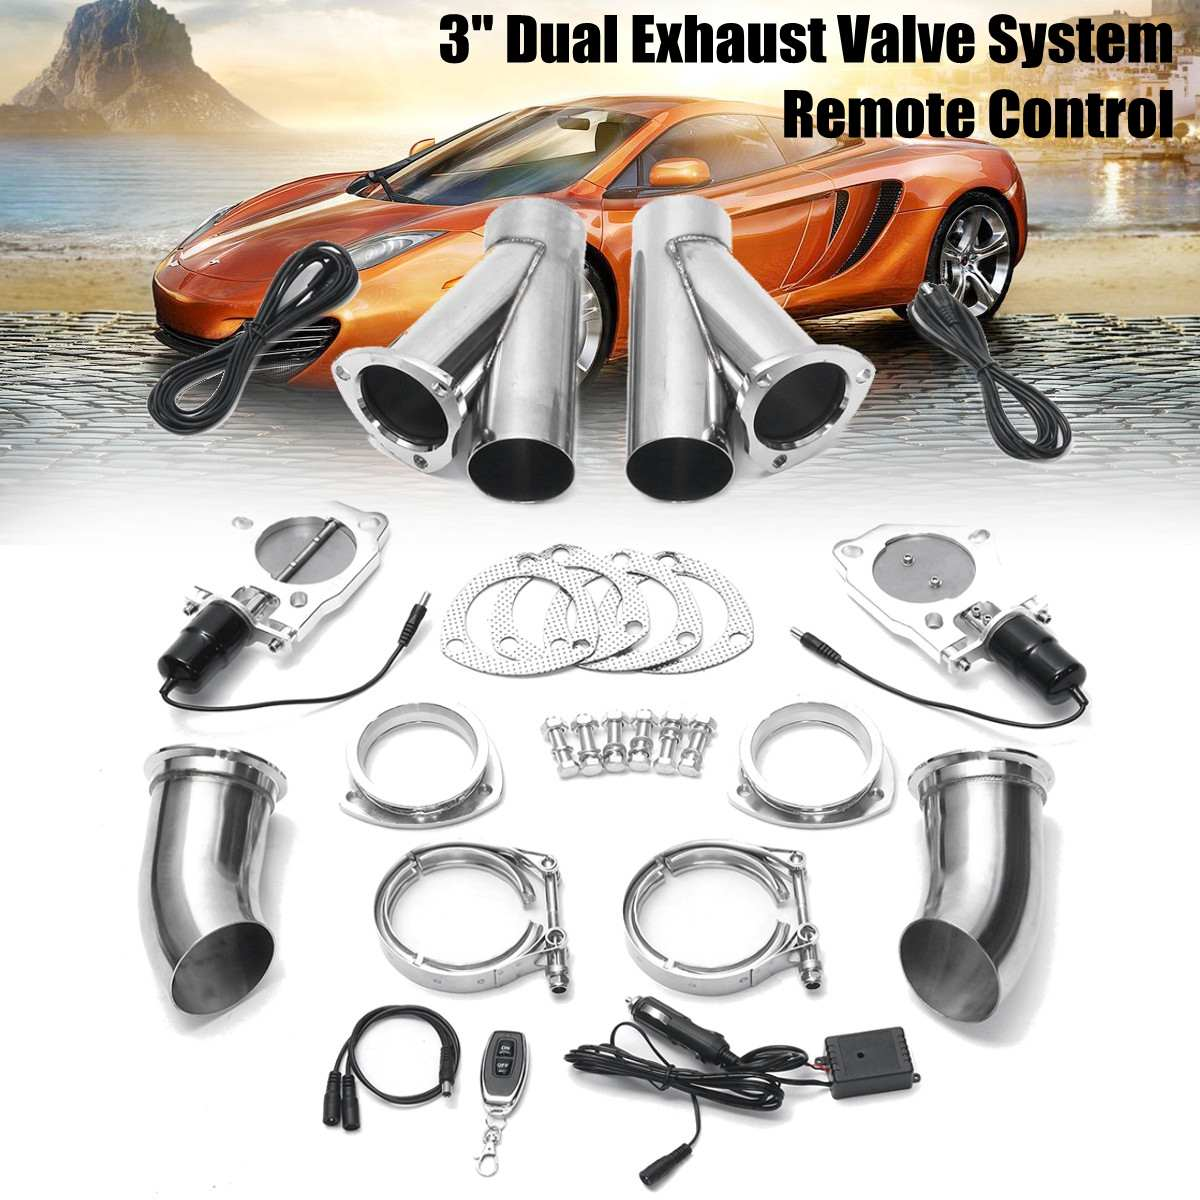 3 Inch 76mm Car Electric Exhaust Muffler Valve Cutout E-Cut System Dump Wireless Remote W/ Gear Driven Motor